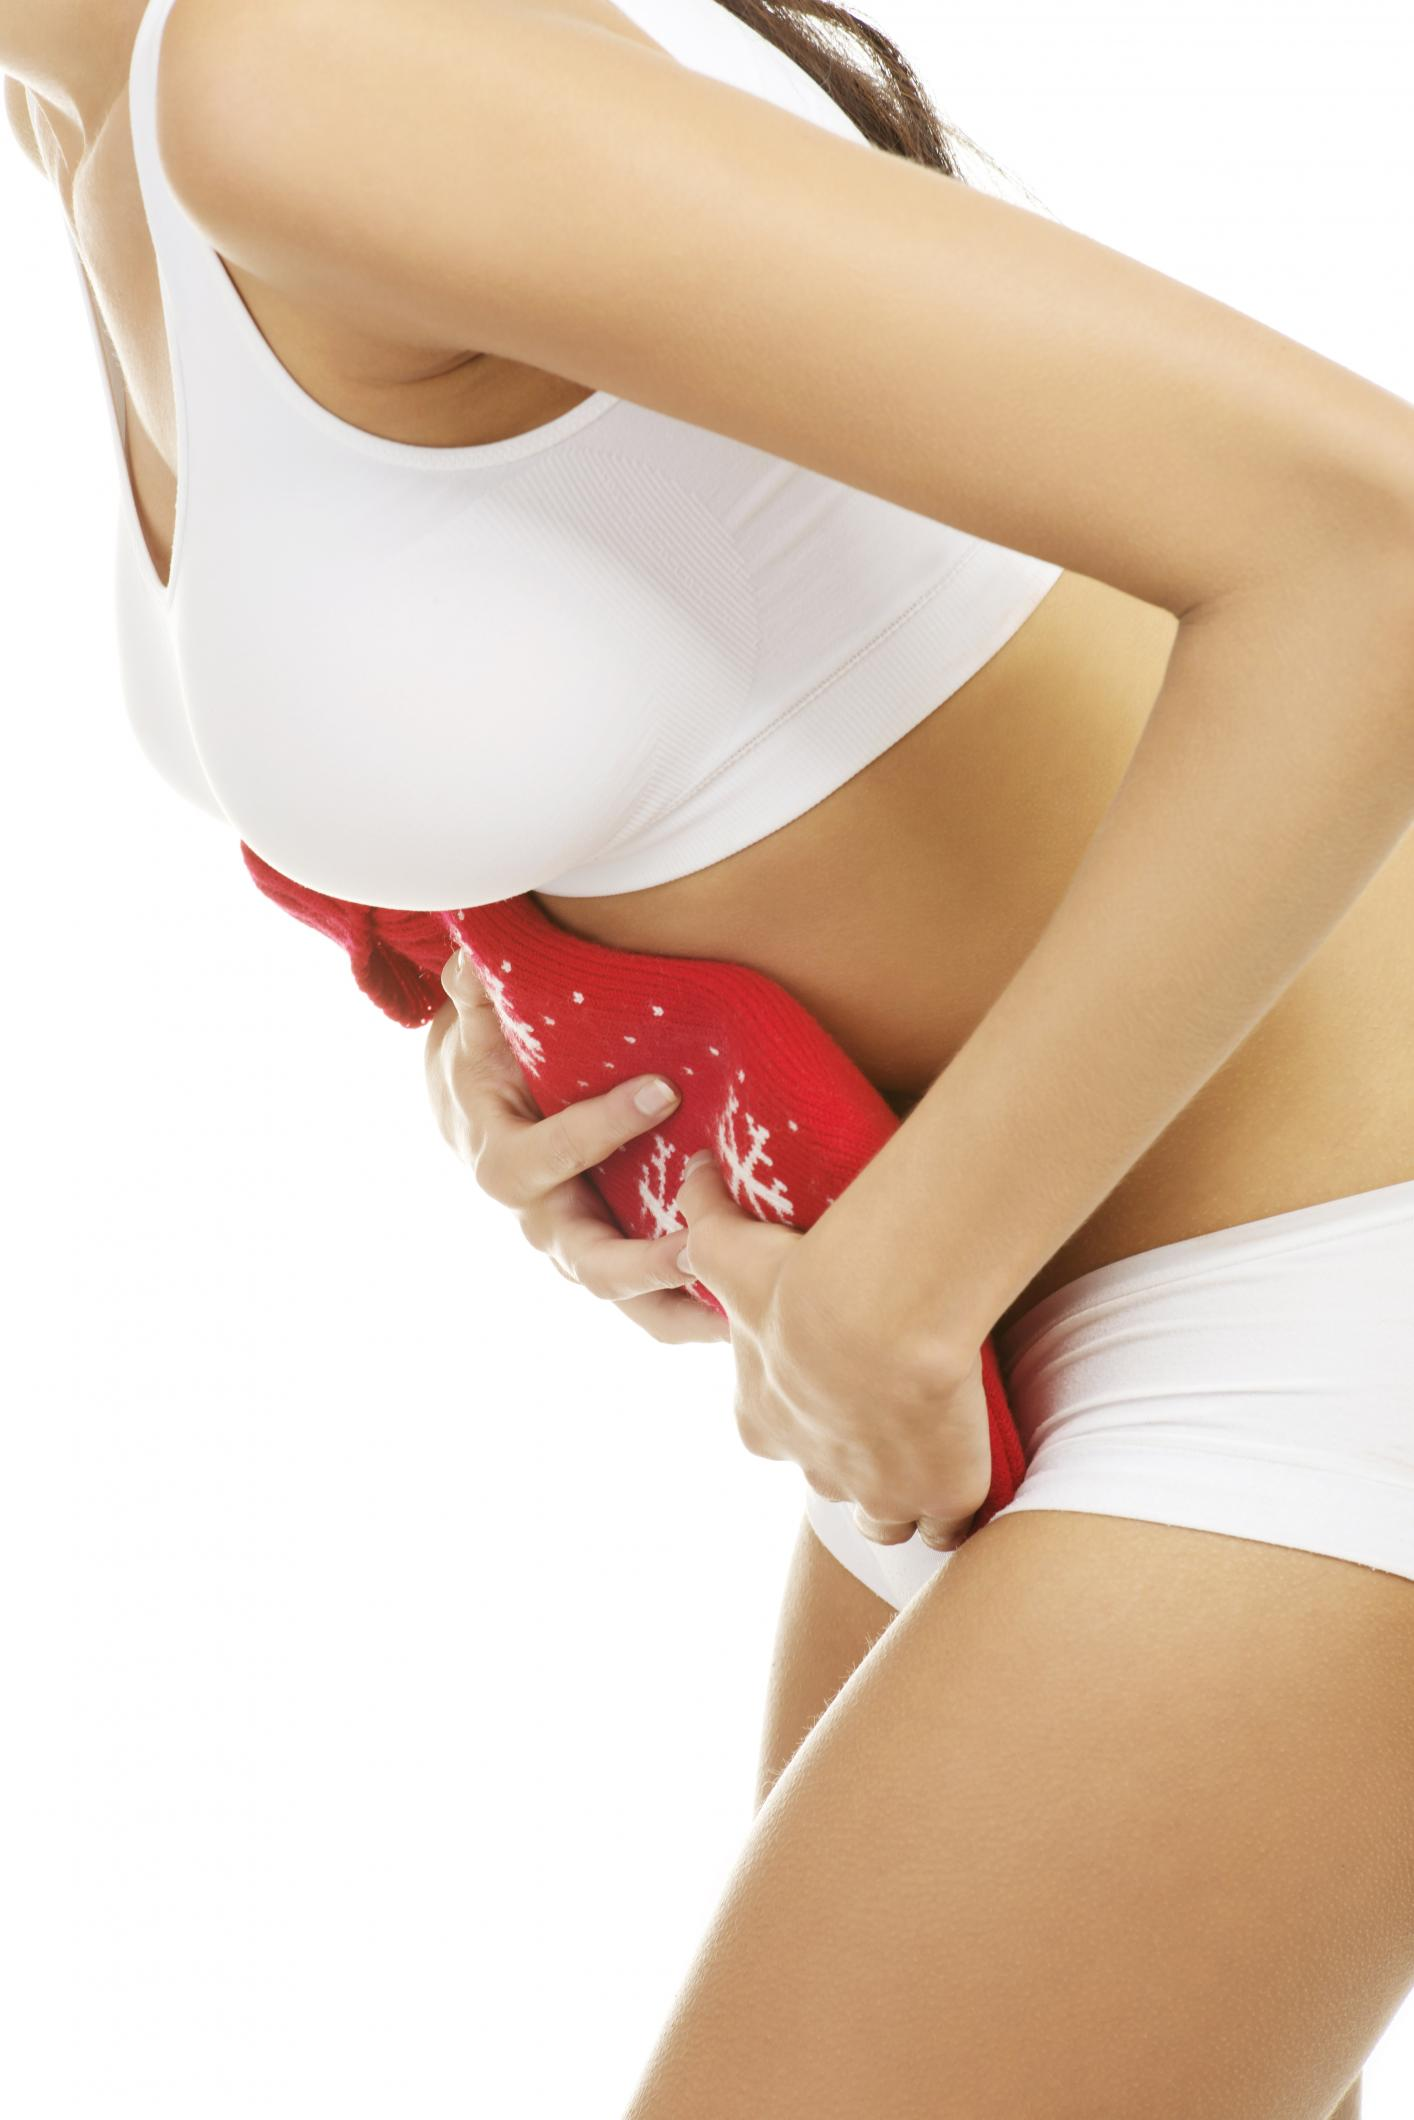 What to Expect From a Hysterectomy